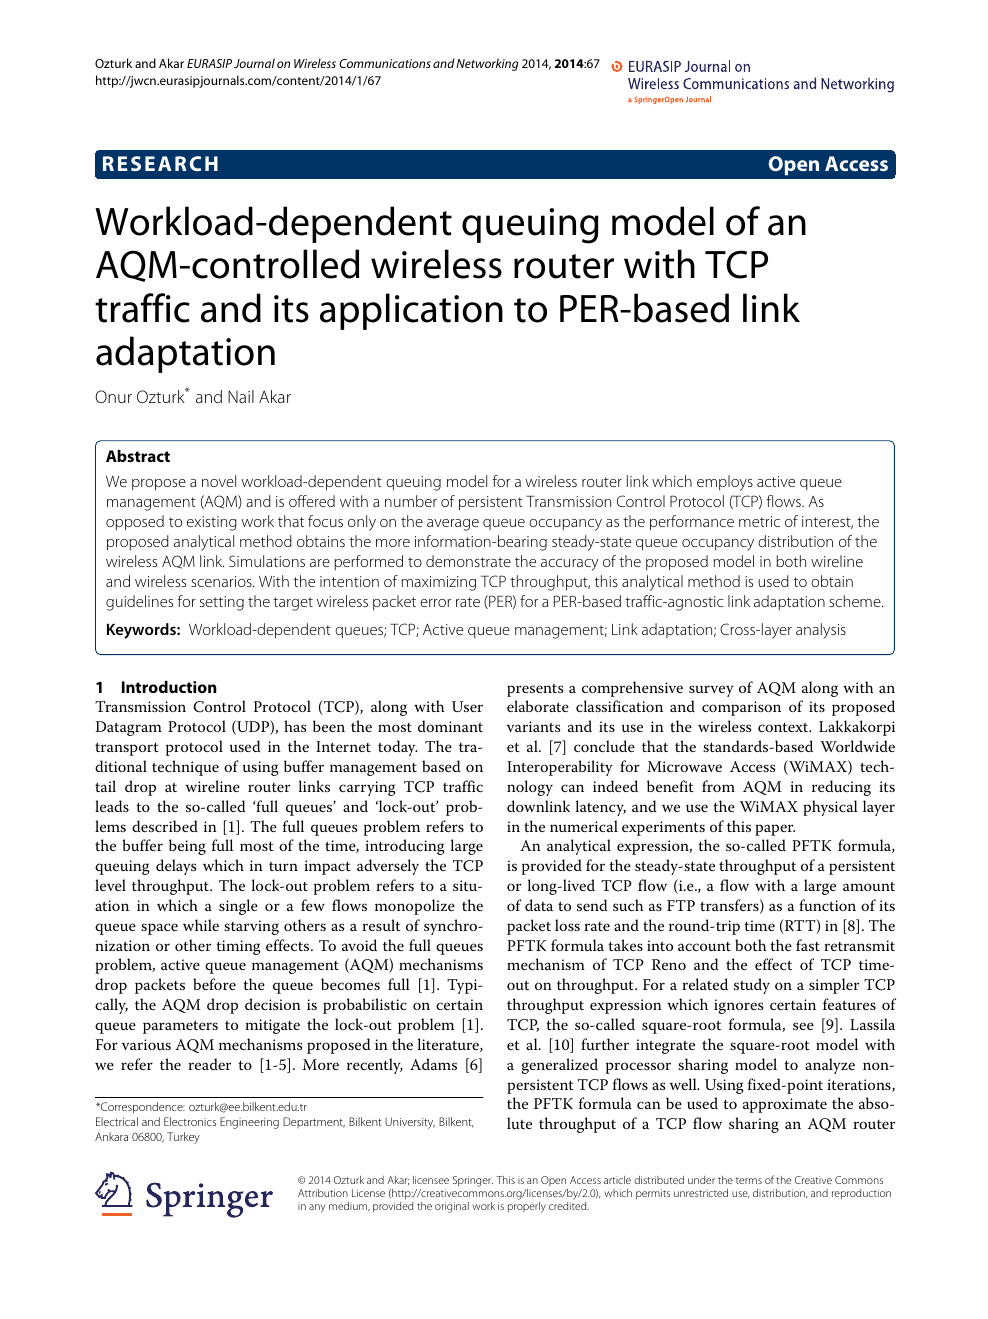 Workload-dependent queuing model of an AQM-controlled